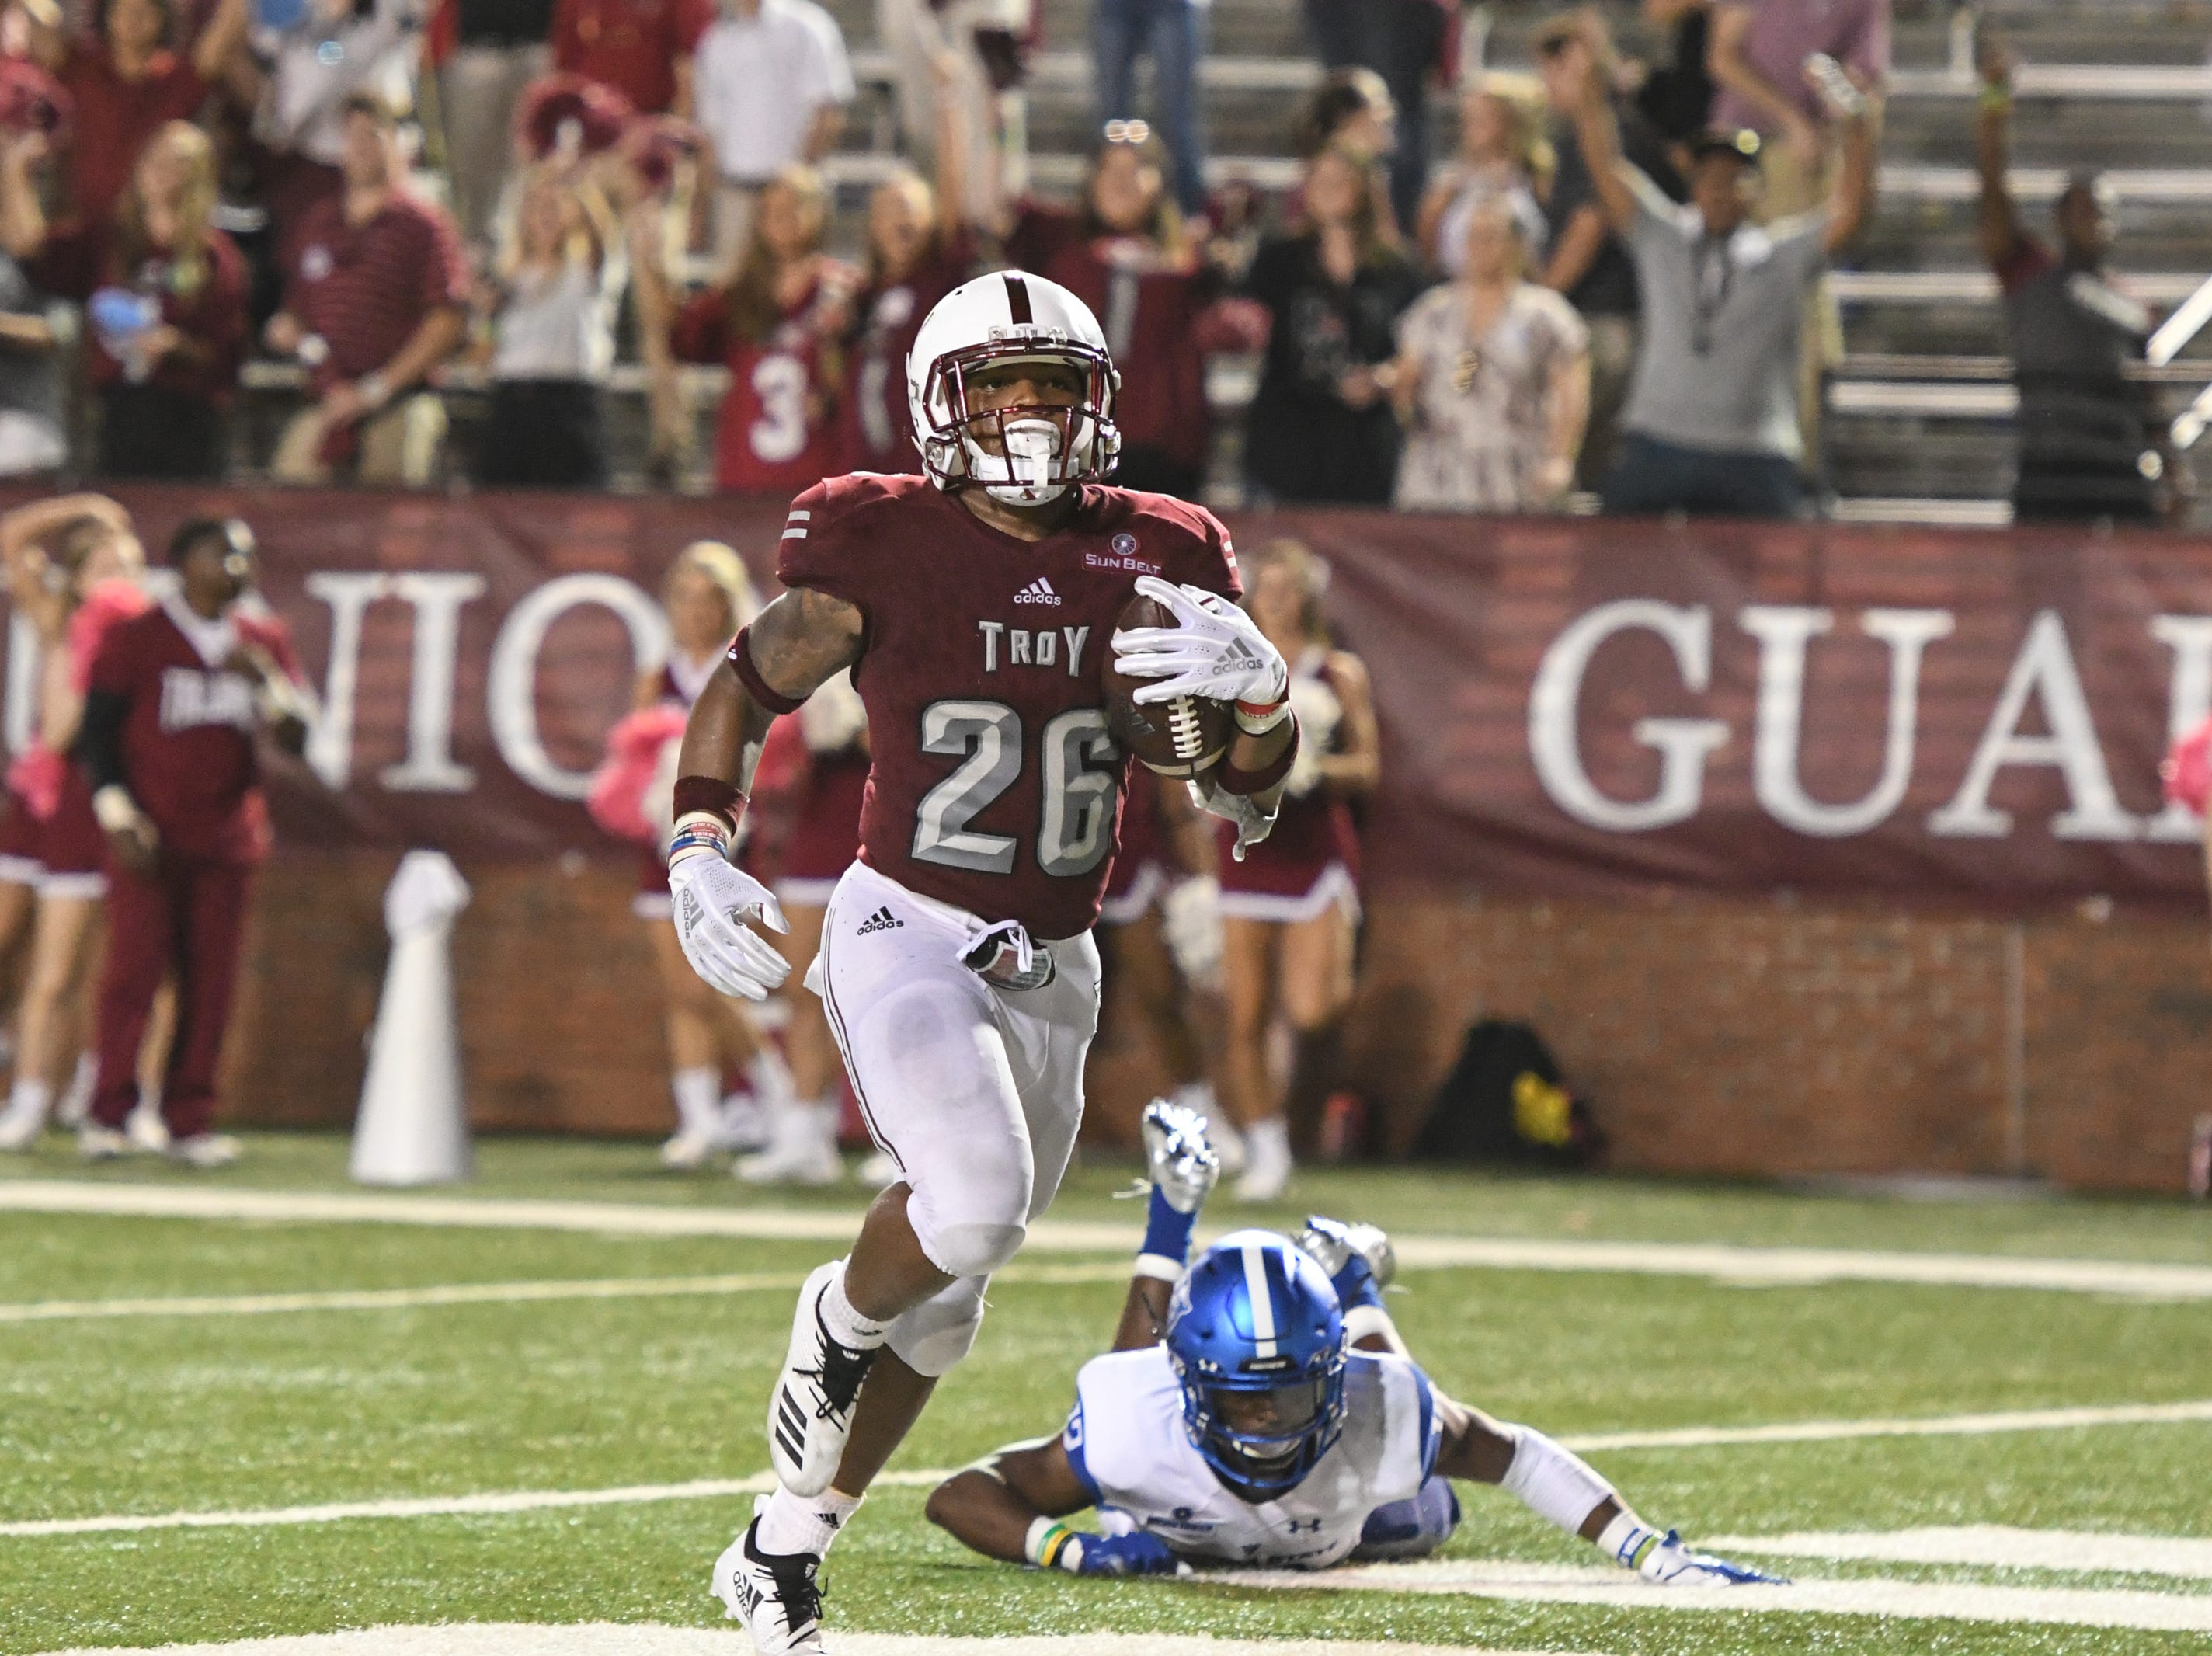 Troy Trojans running back B.J. Smith (26) runs into the end zone for a touchdown during the second half against Georgia State at Veteran's Memorial Stadium in Troy, Ala., on Thursday, Oct. 4, 2018. (Chip Dillard/Special to the Montgomery Advertiser)